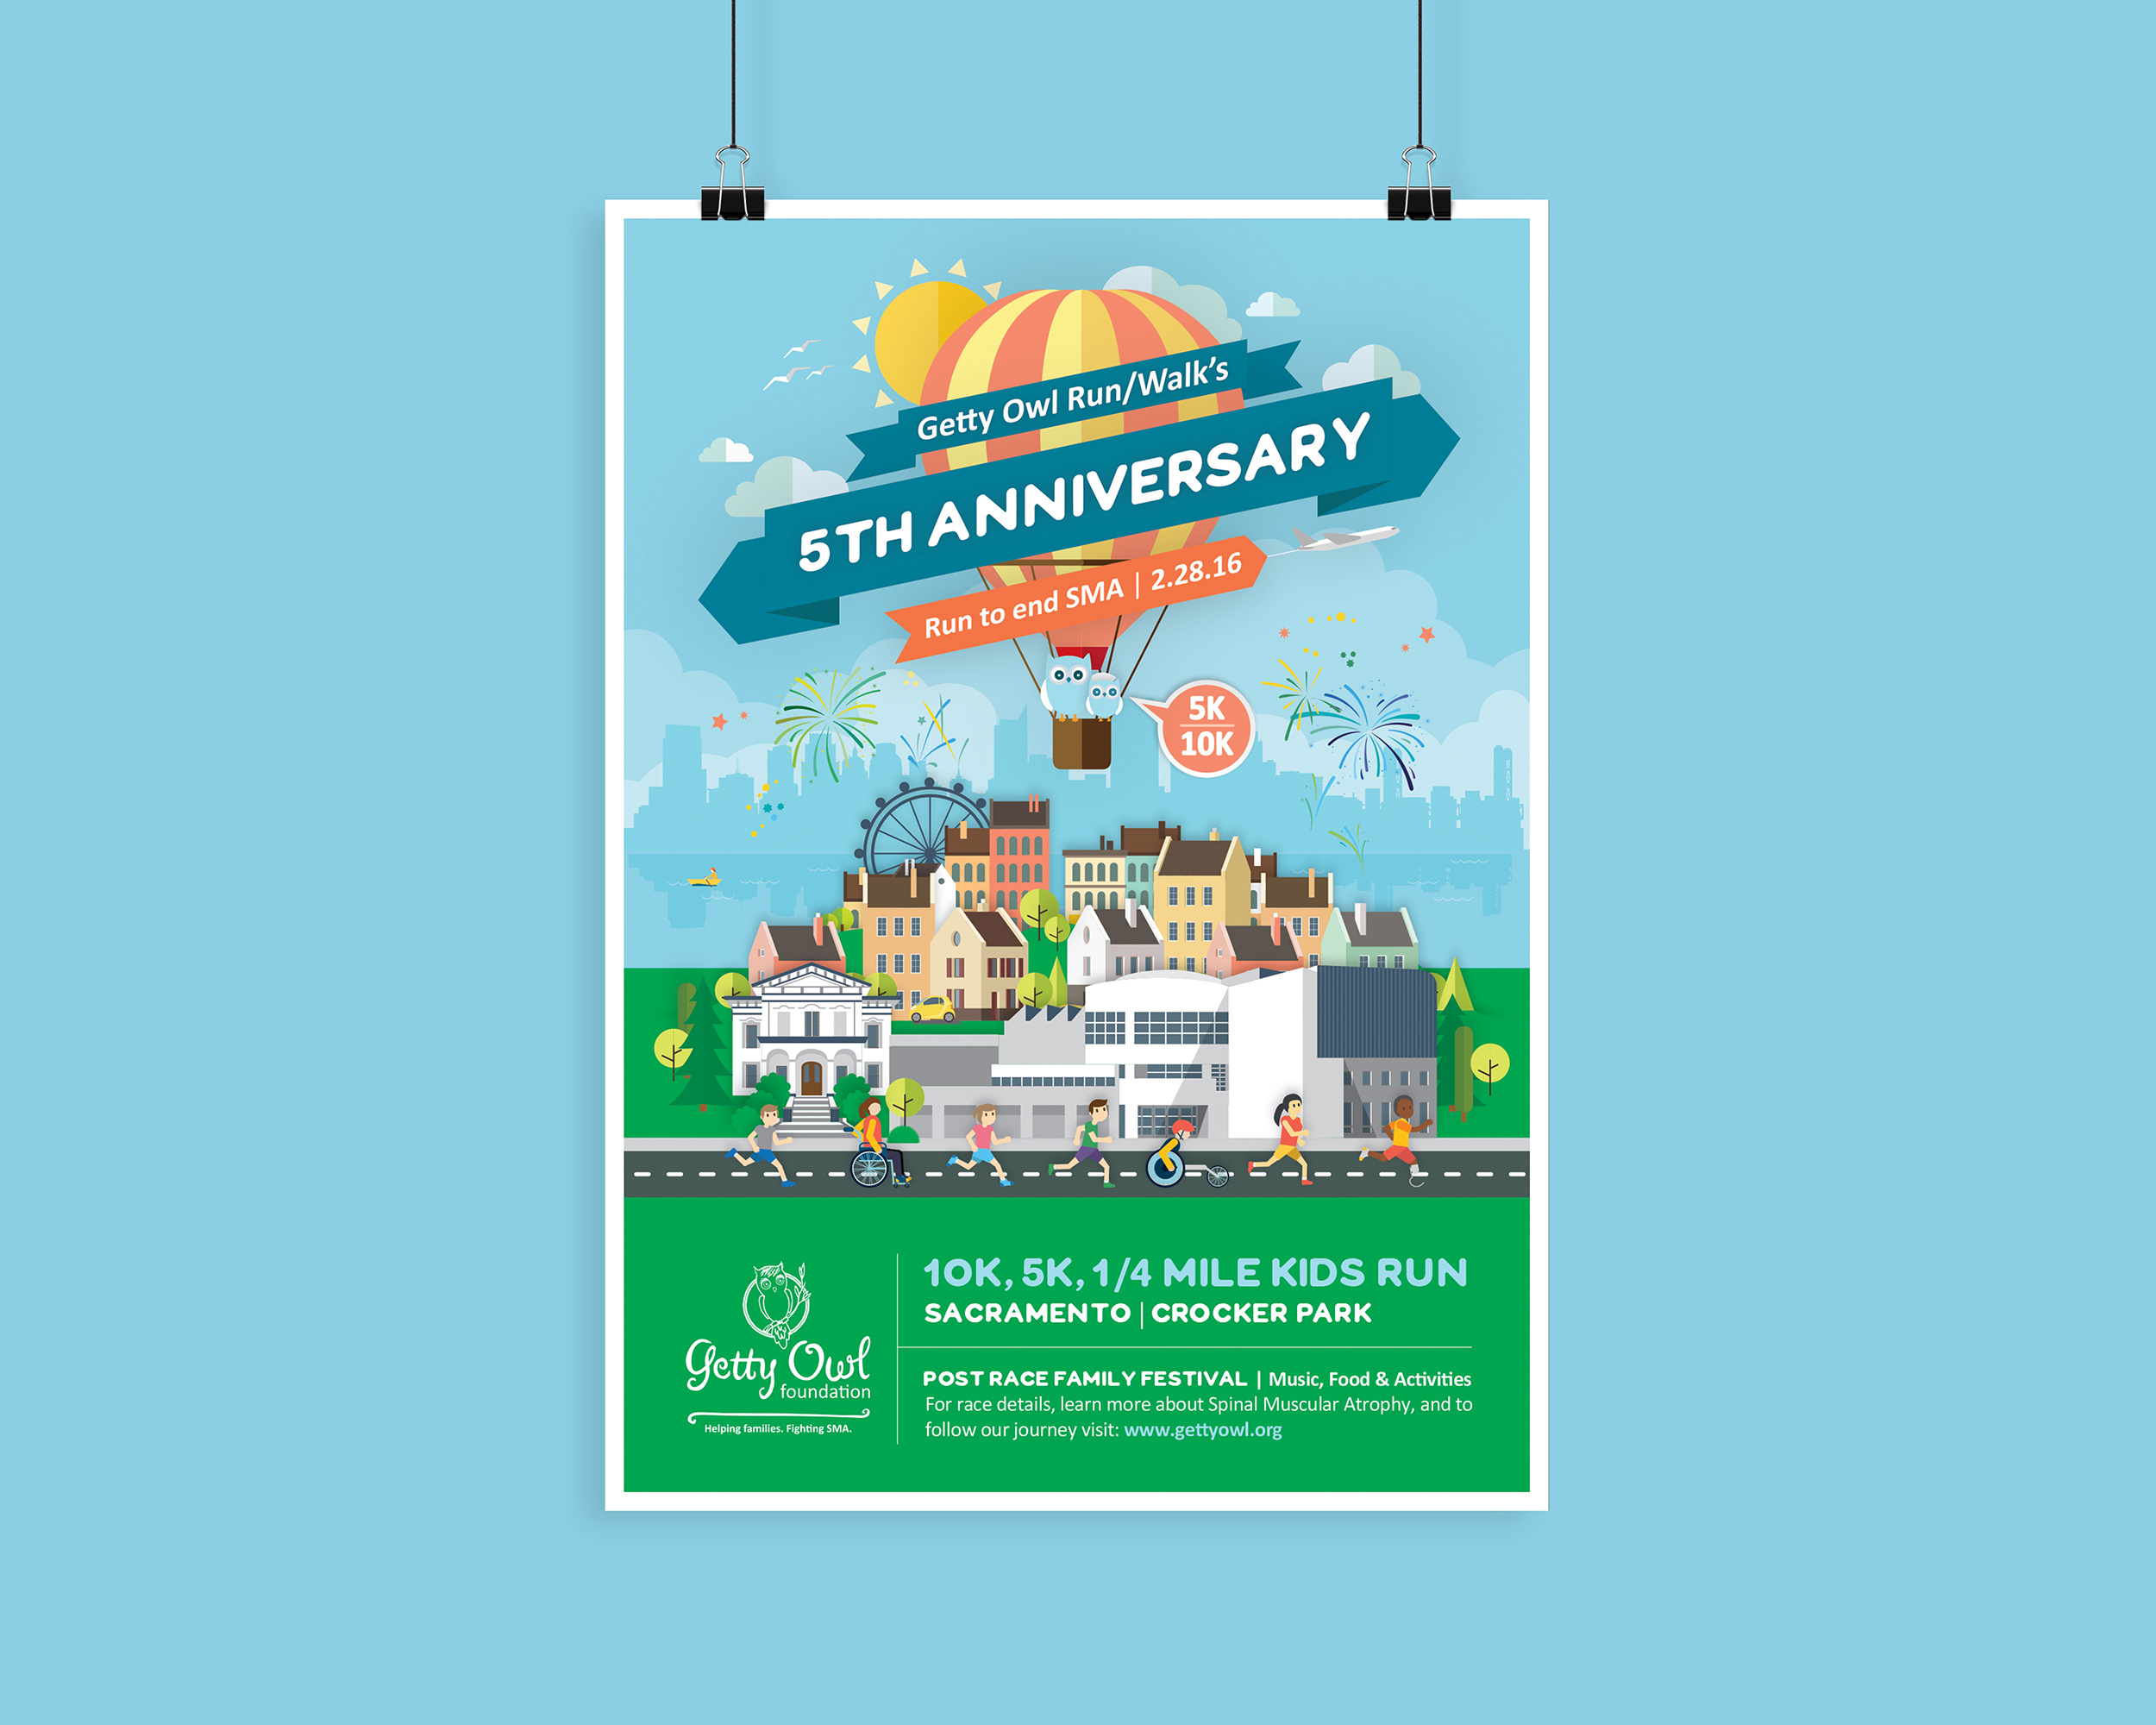 5th Anniversary Getty Owl Run/Walk Poster